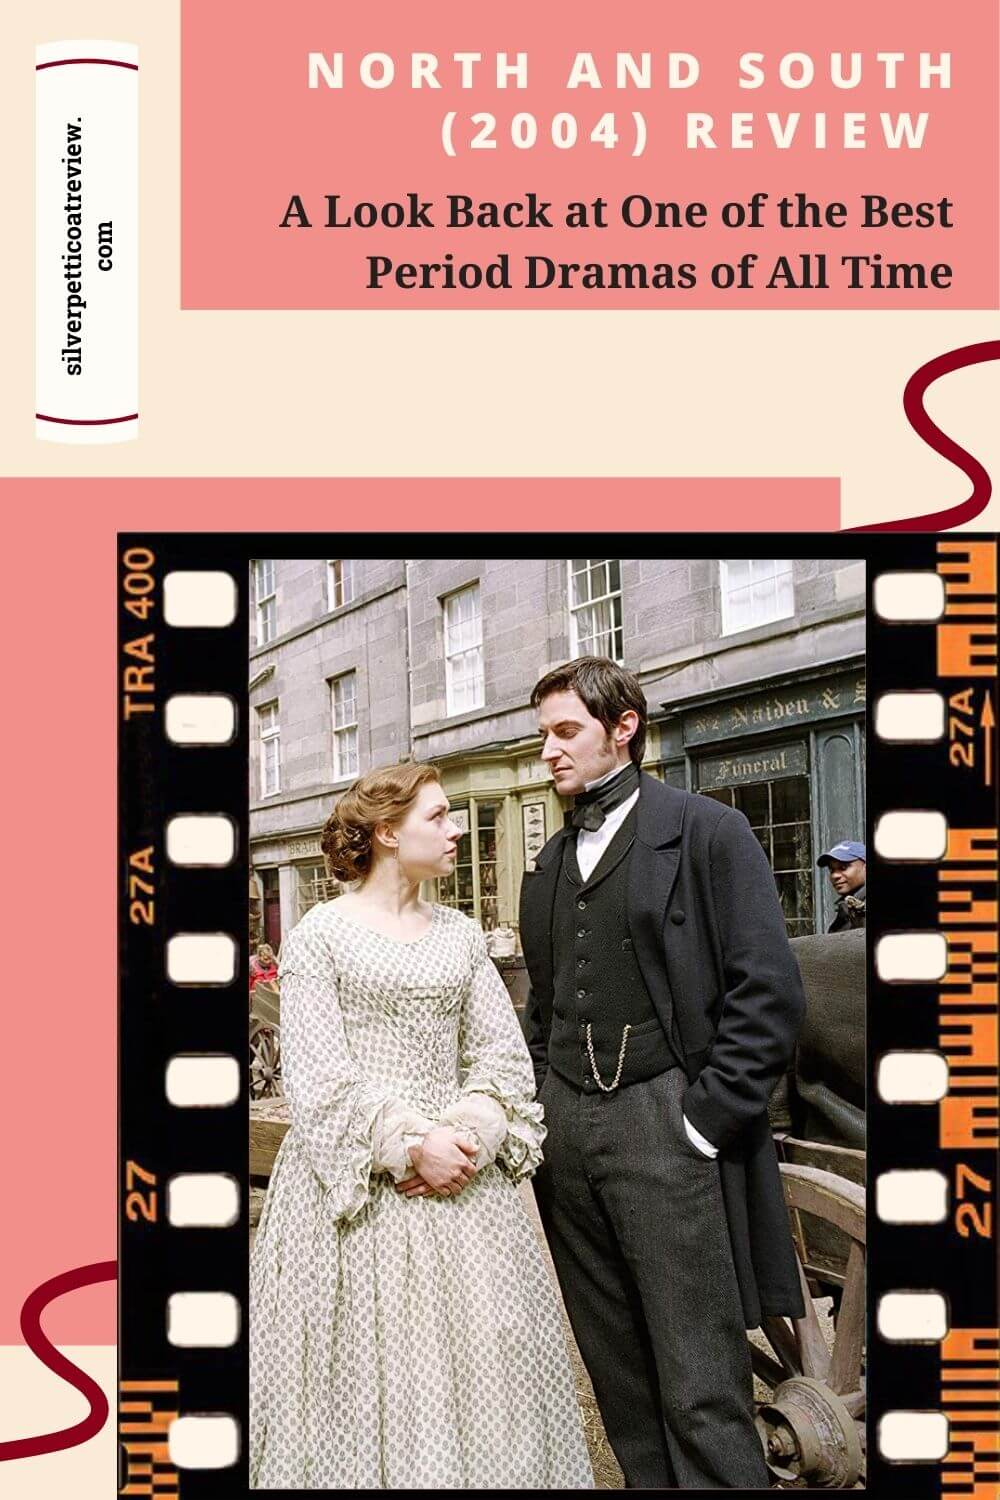 north and south 2004 review pinterest image